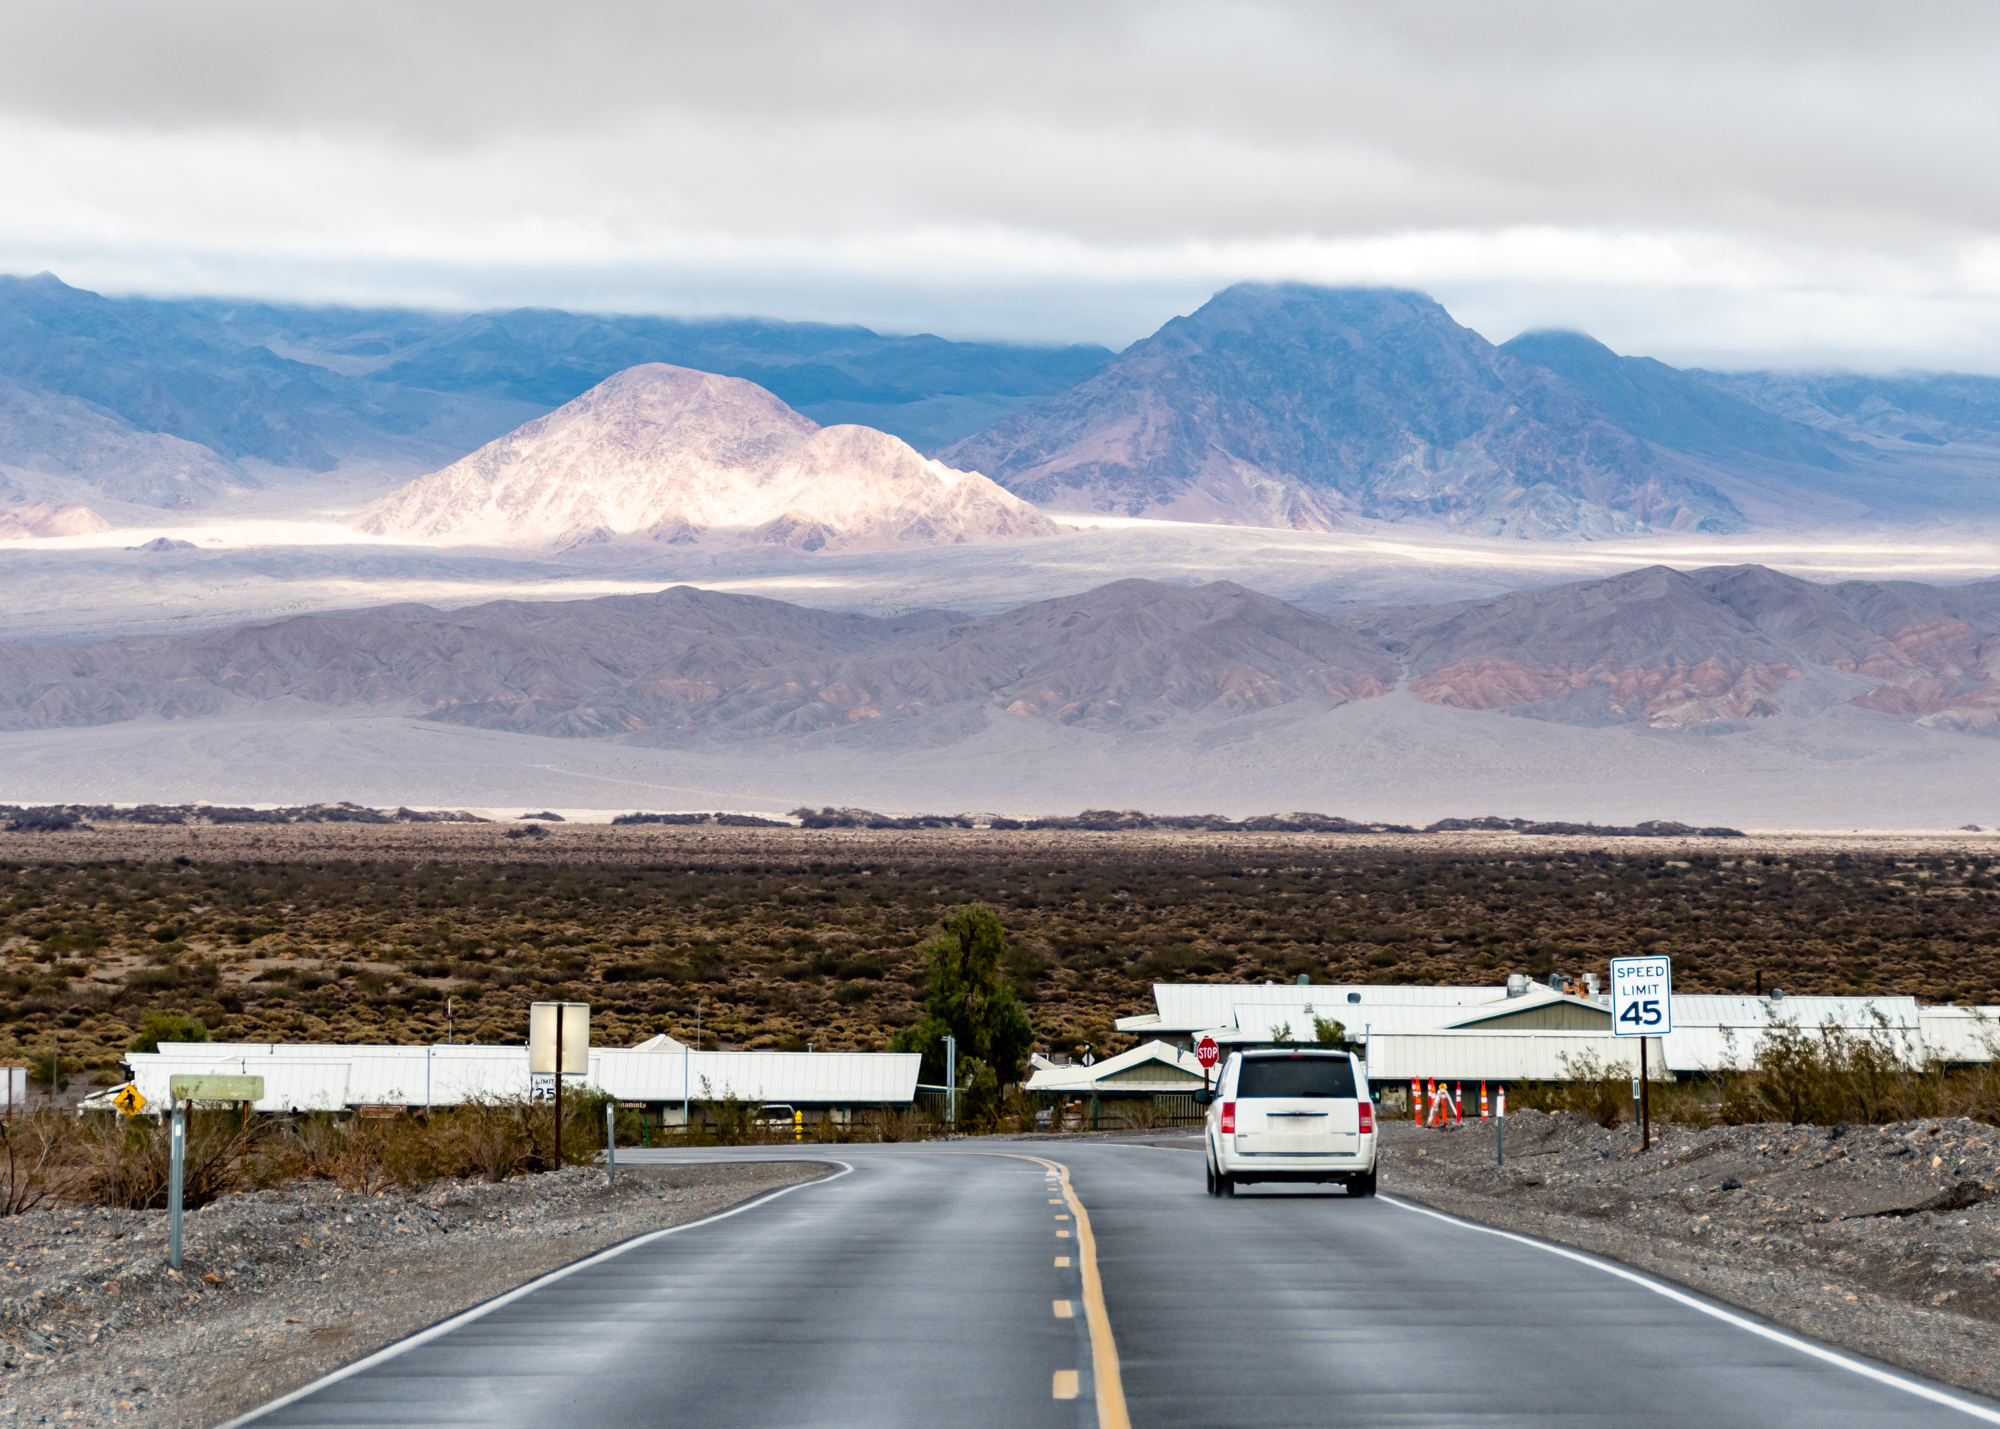 Approaching Stovepipe Wells - Death Valley